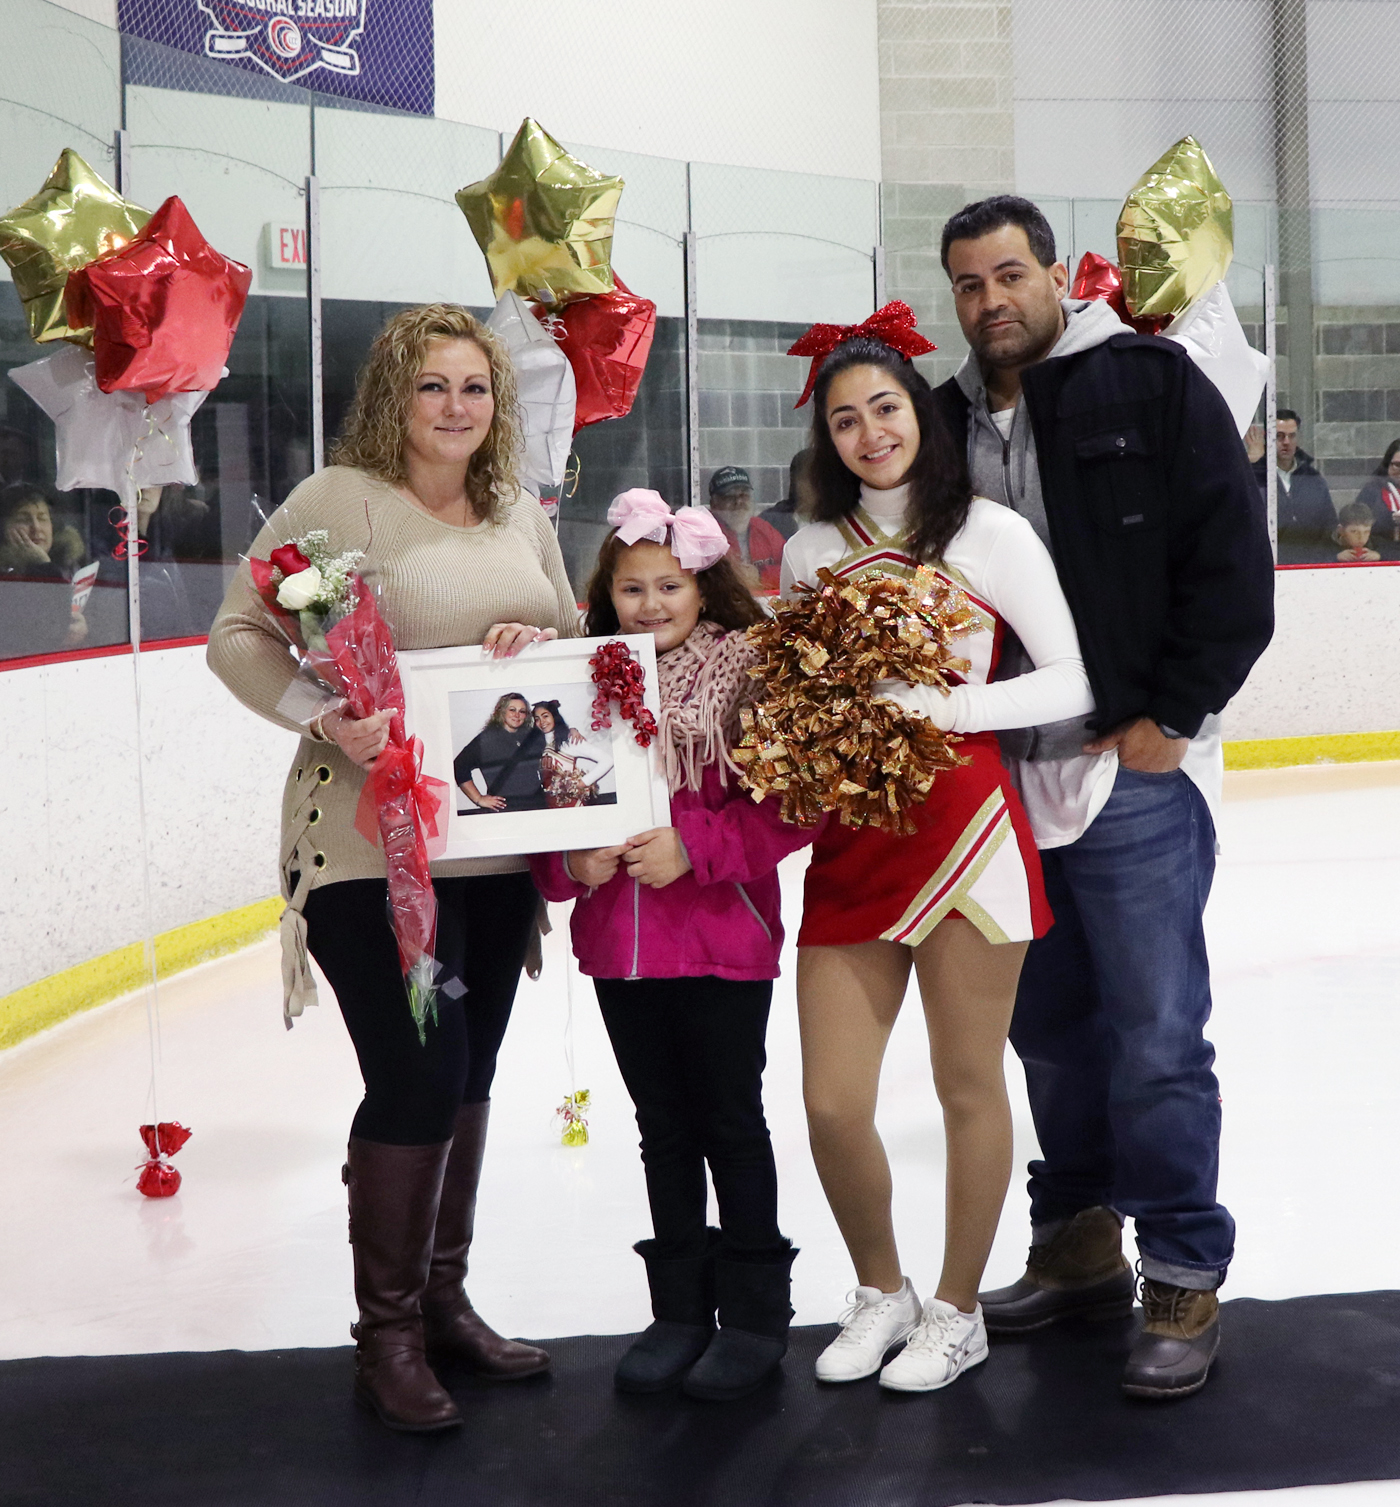 Victoria Arzola with her parents, Gina and Hector, and sister, Chloe